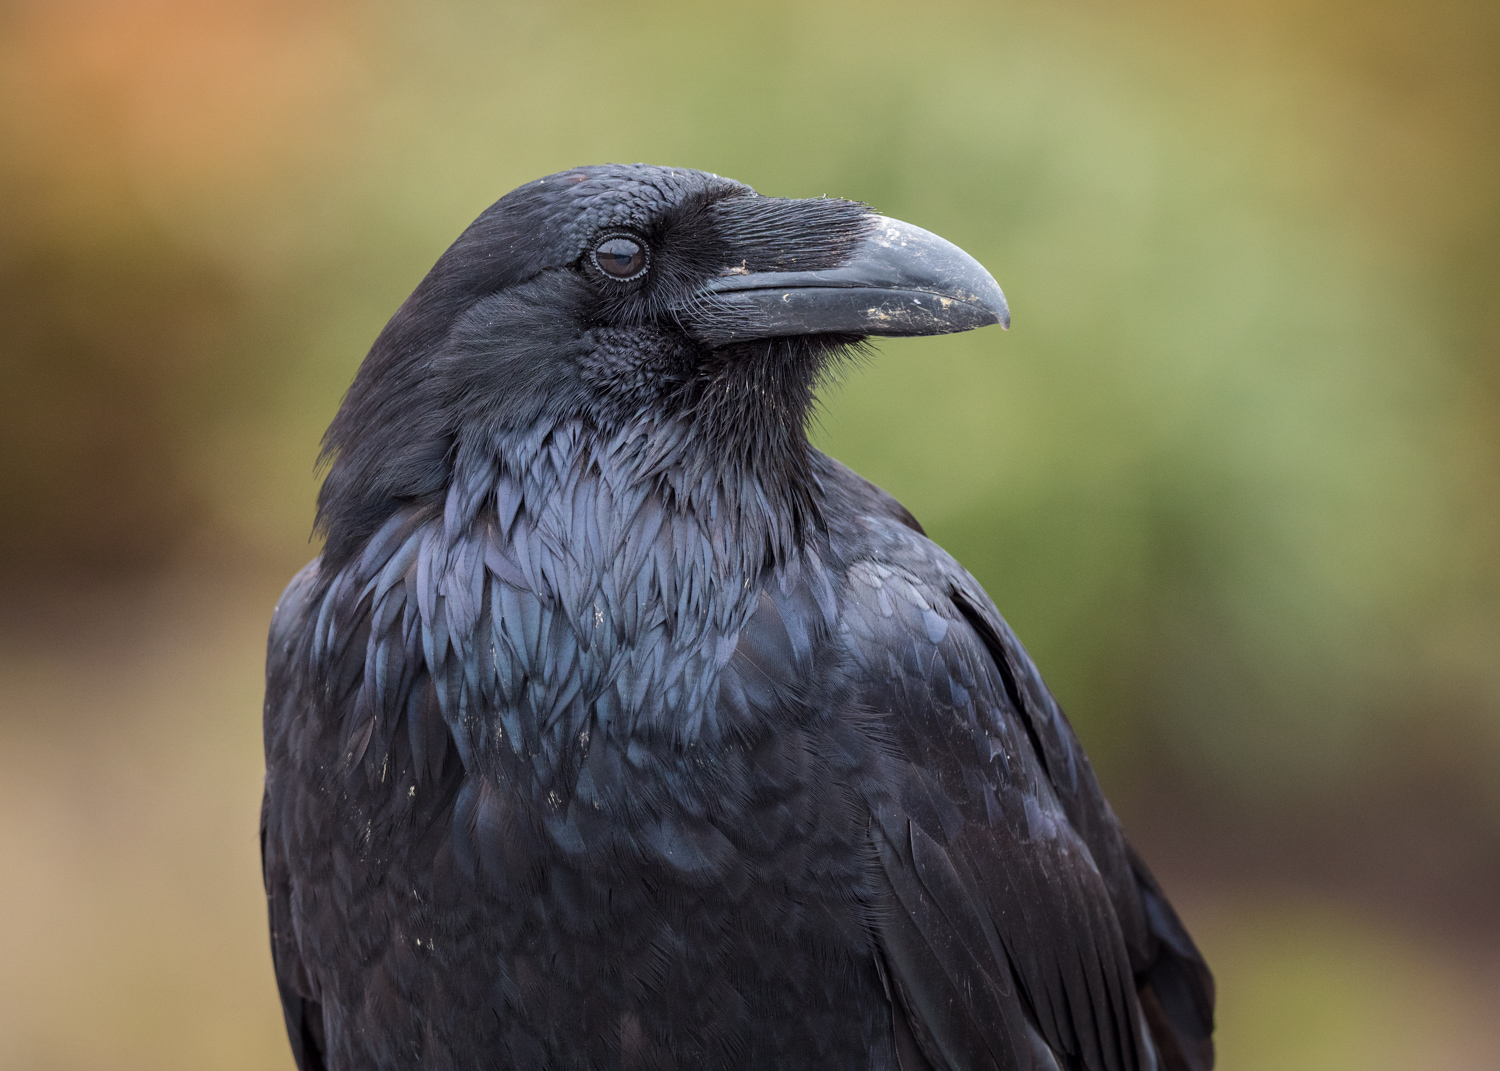 Five (More) Uncomfortable Truths About Photography - portrait shot of a raven